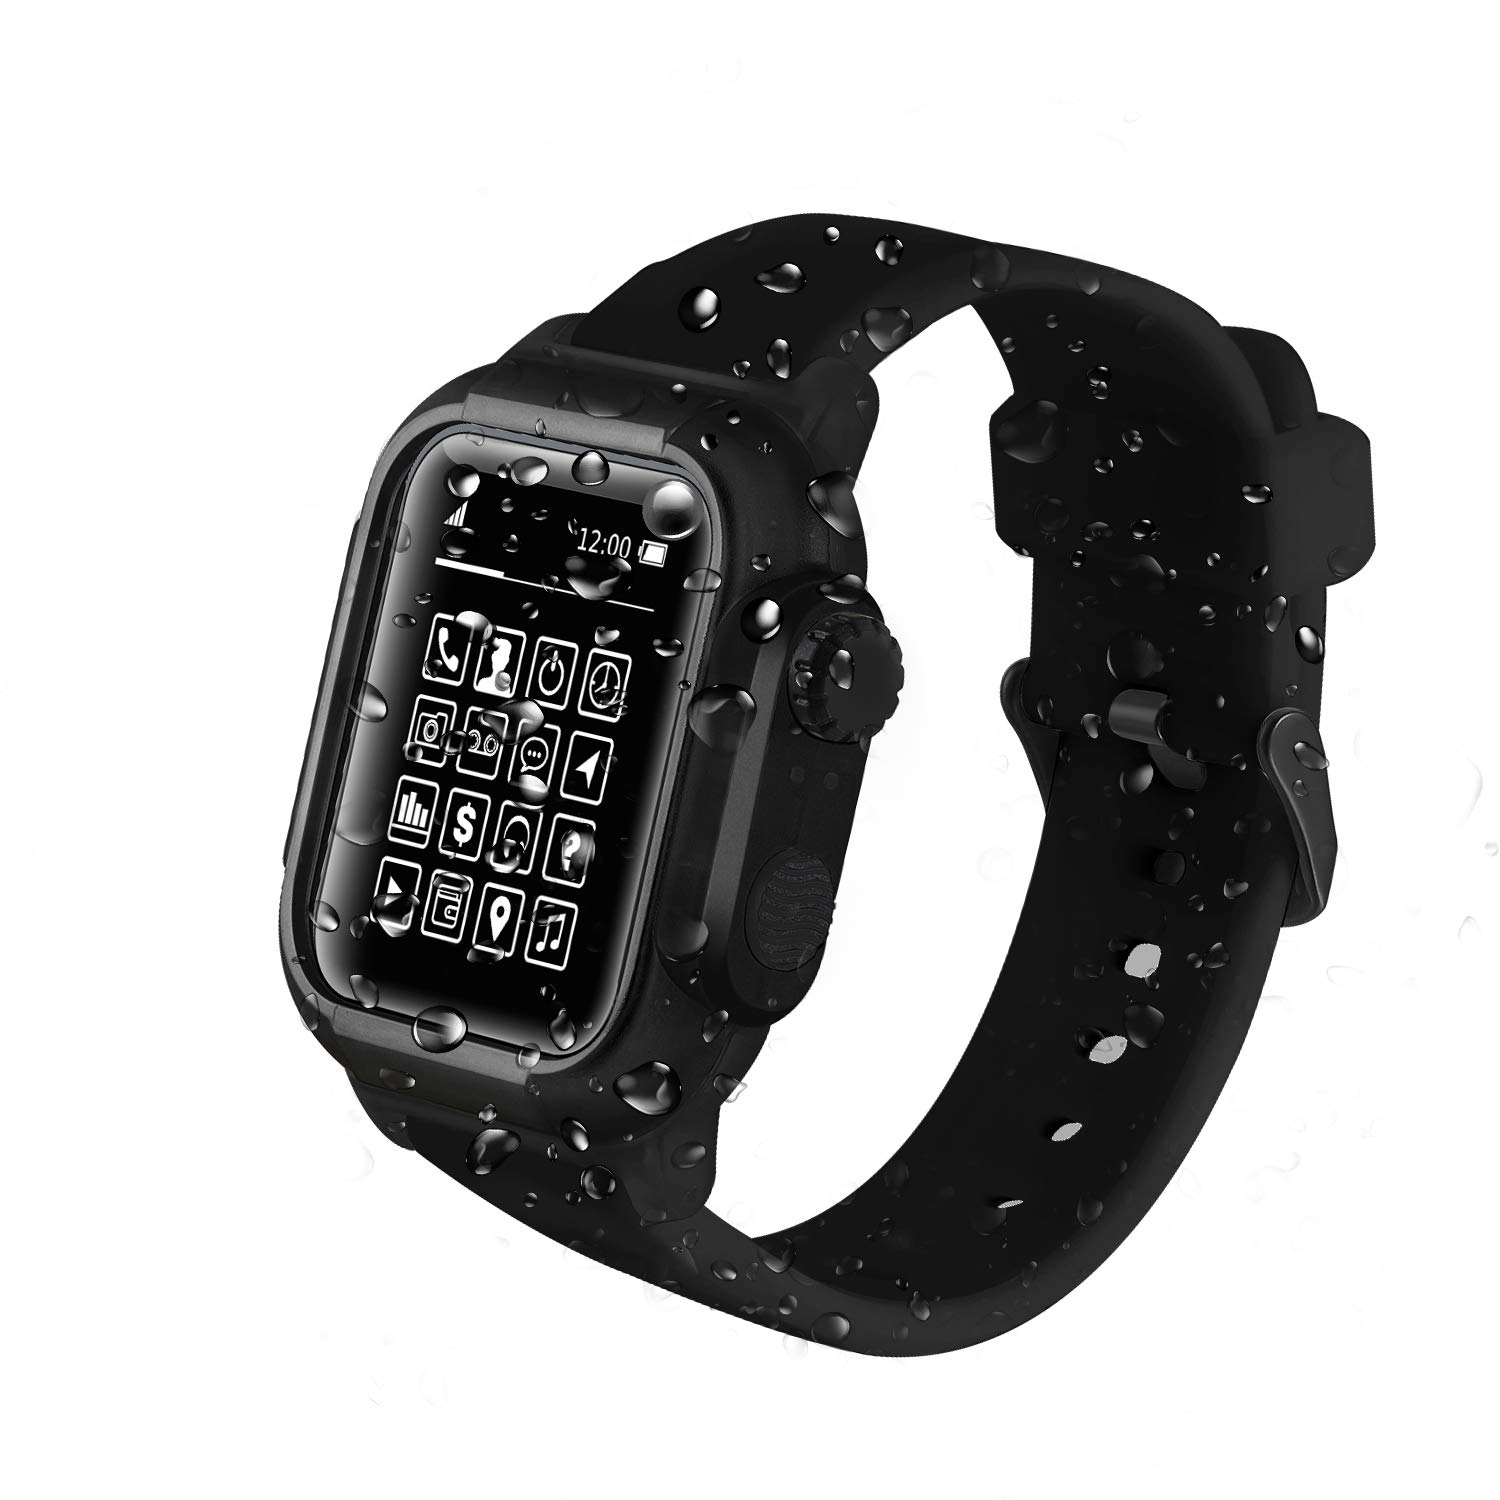 Waterproof Apple Watch Case Series 4 44mm with Premium Soft Silicone Apple Watch Band,Shock Proof Impact Resistant Rugged iWatch Protective Case for Apple Watch Series 4 44mm Black